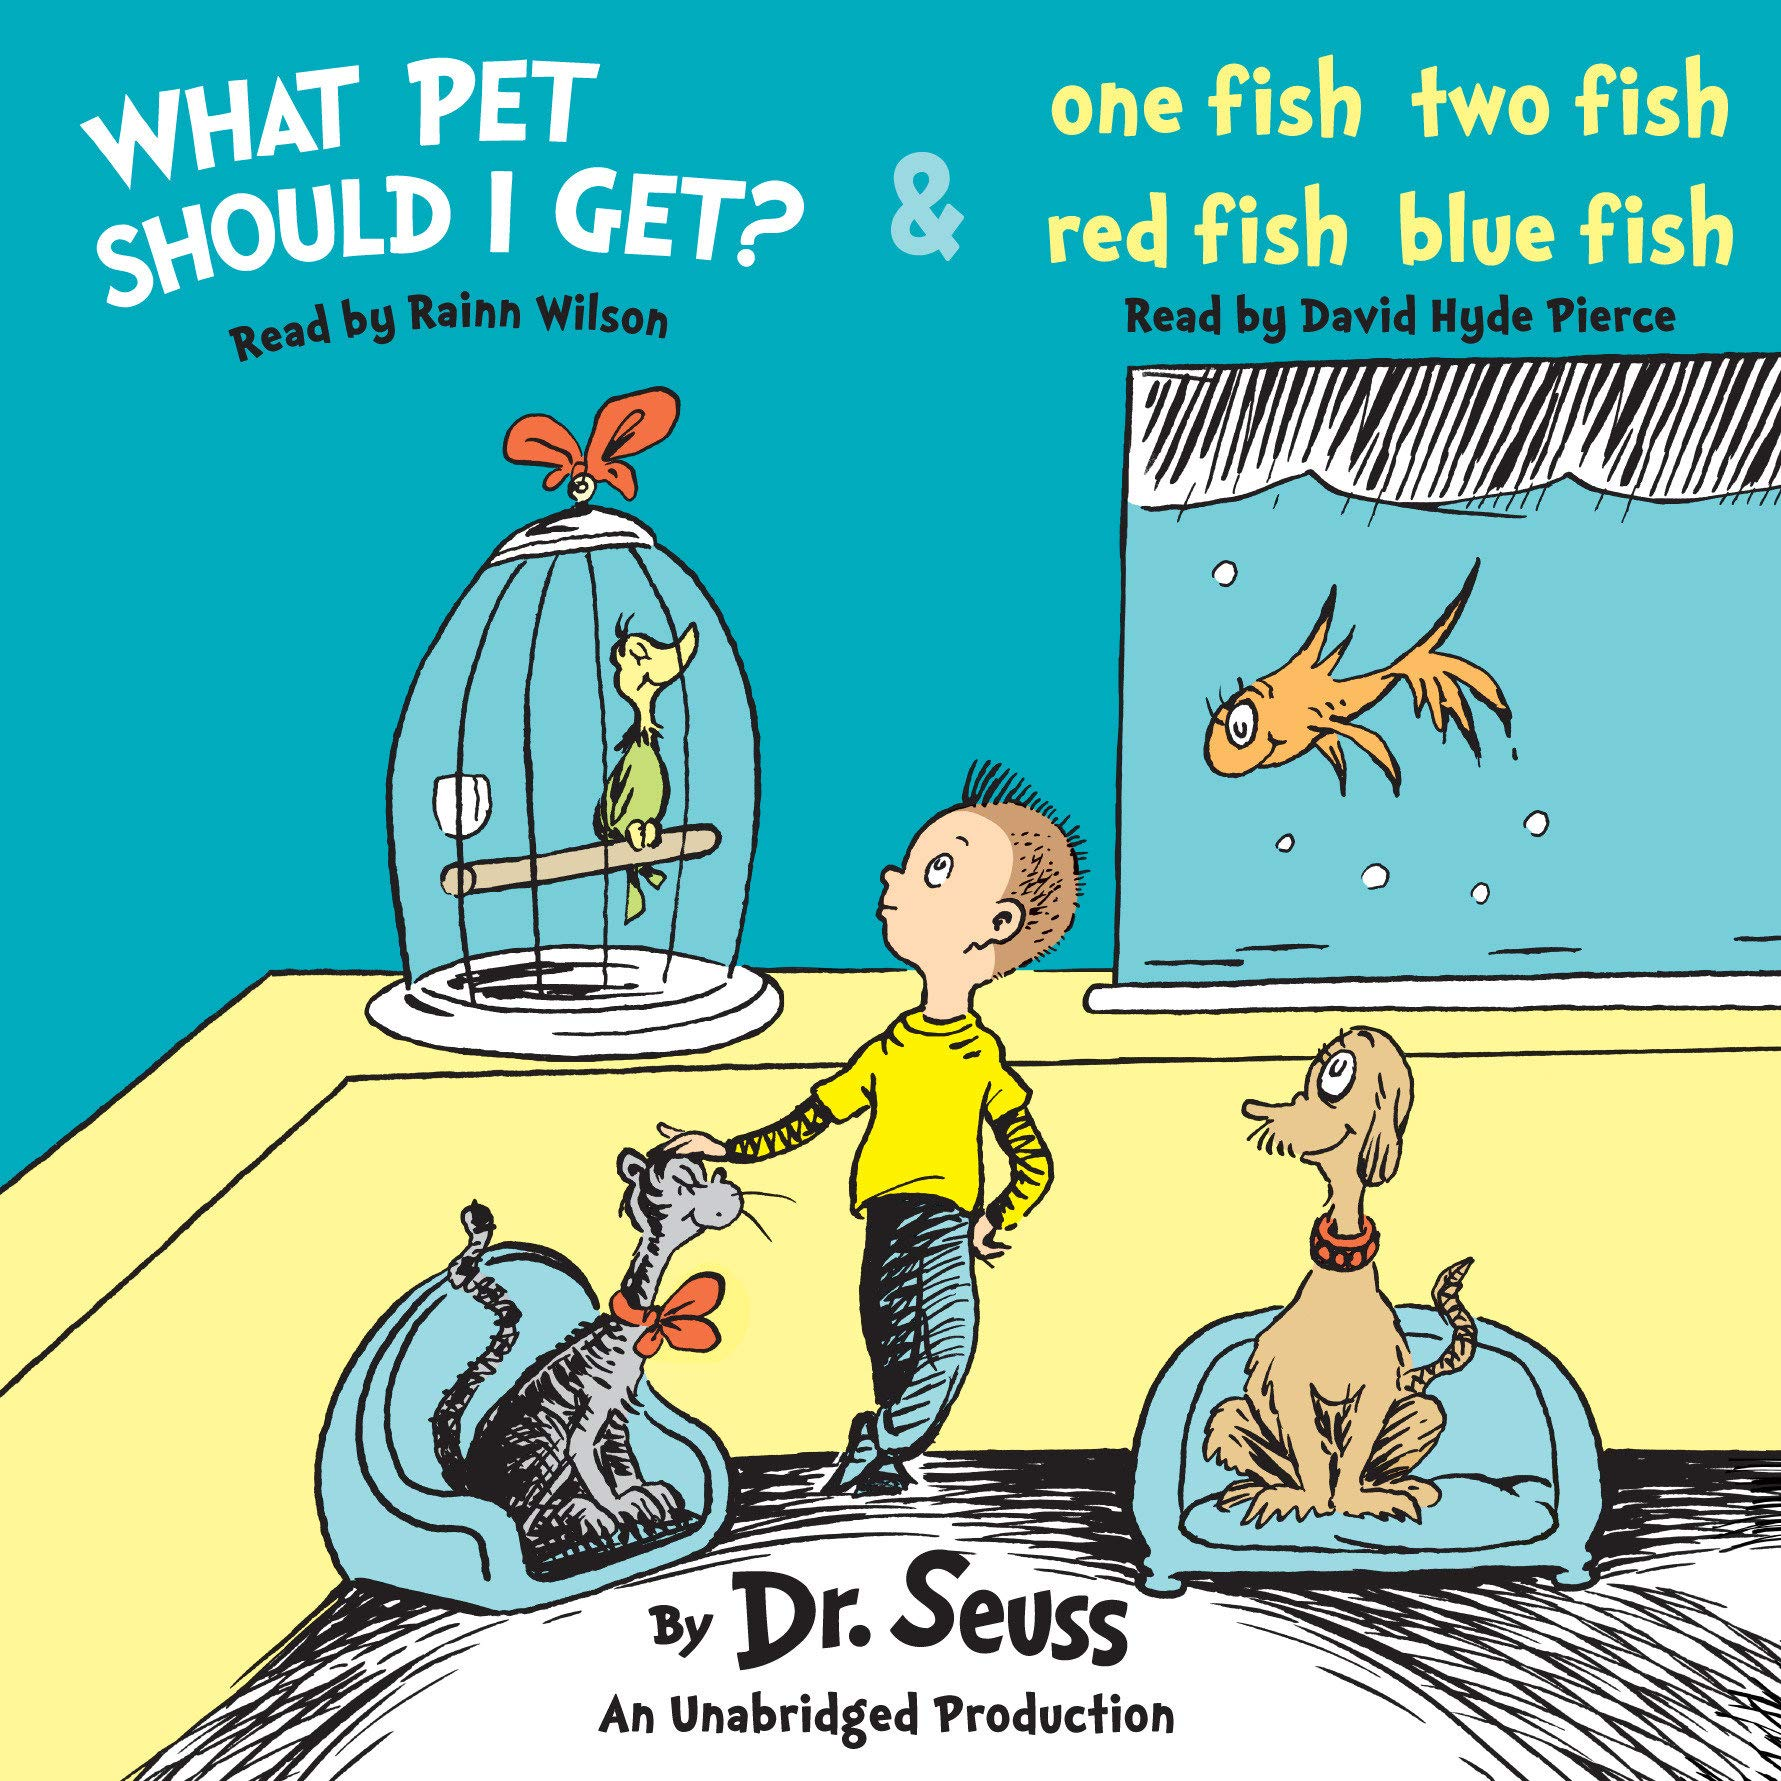 One fish two fish book cover clipart banner library download Amazon.com: What Pet Should I Get? and One Fish Two Fish Red ... banner library download